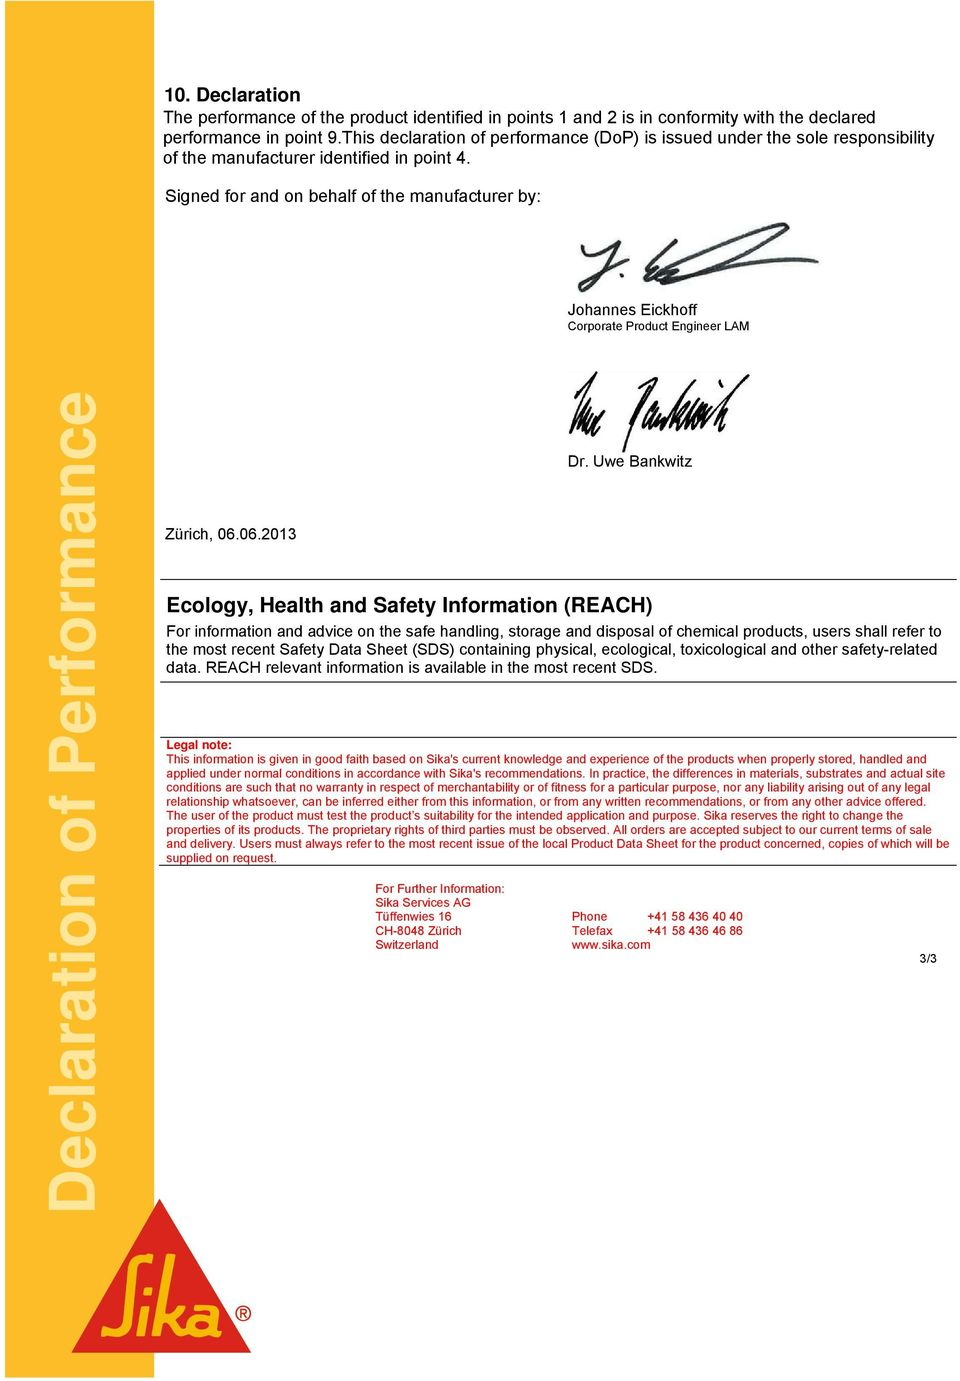 Signed for and on behalf of the manufacturer by: Johannes Eickhoff Corporate Product Engineer LAM Zürich, 06.06.2013 Dr.